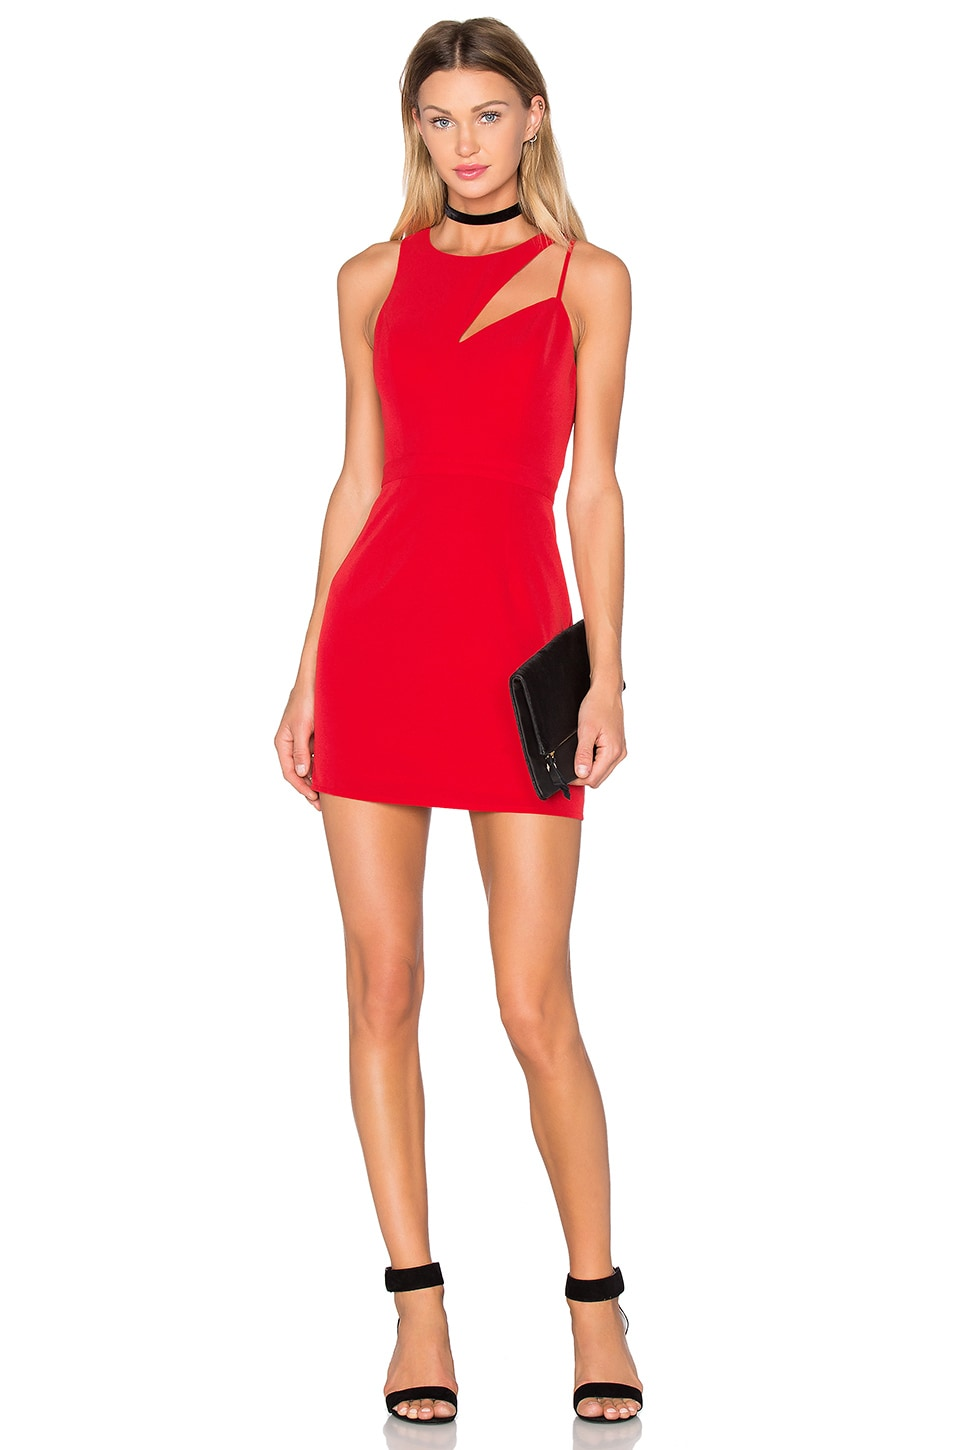 x Naven Twins Cut The Line Bodycon